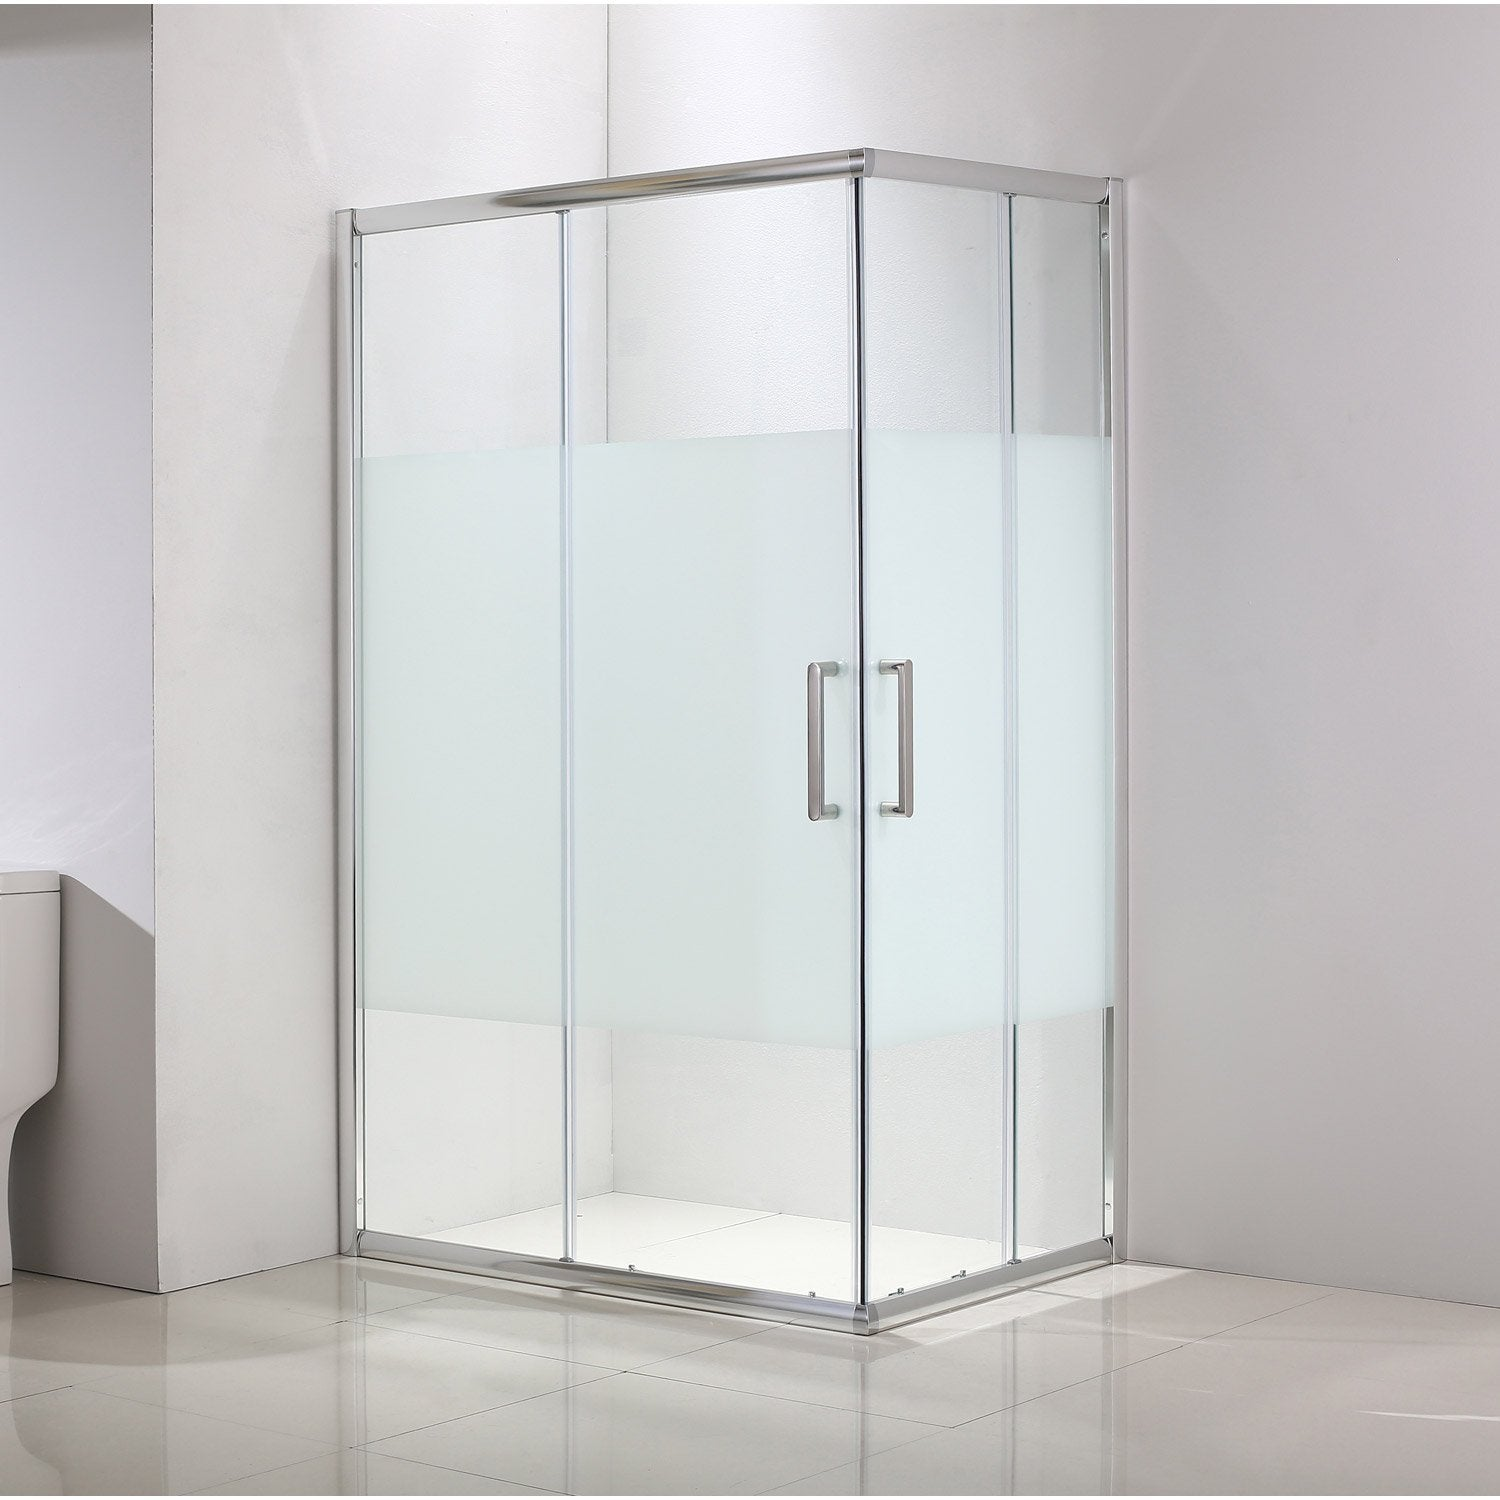 Porte de douche coulissante angle rectangle 90 x 70 cm - Porte de douche leroy merlin ...